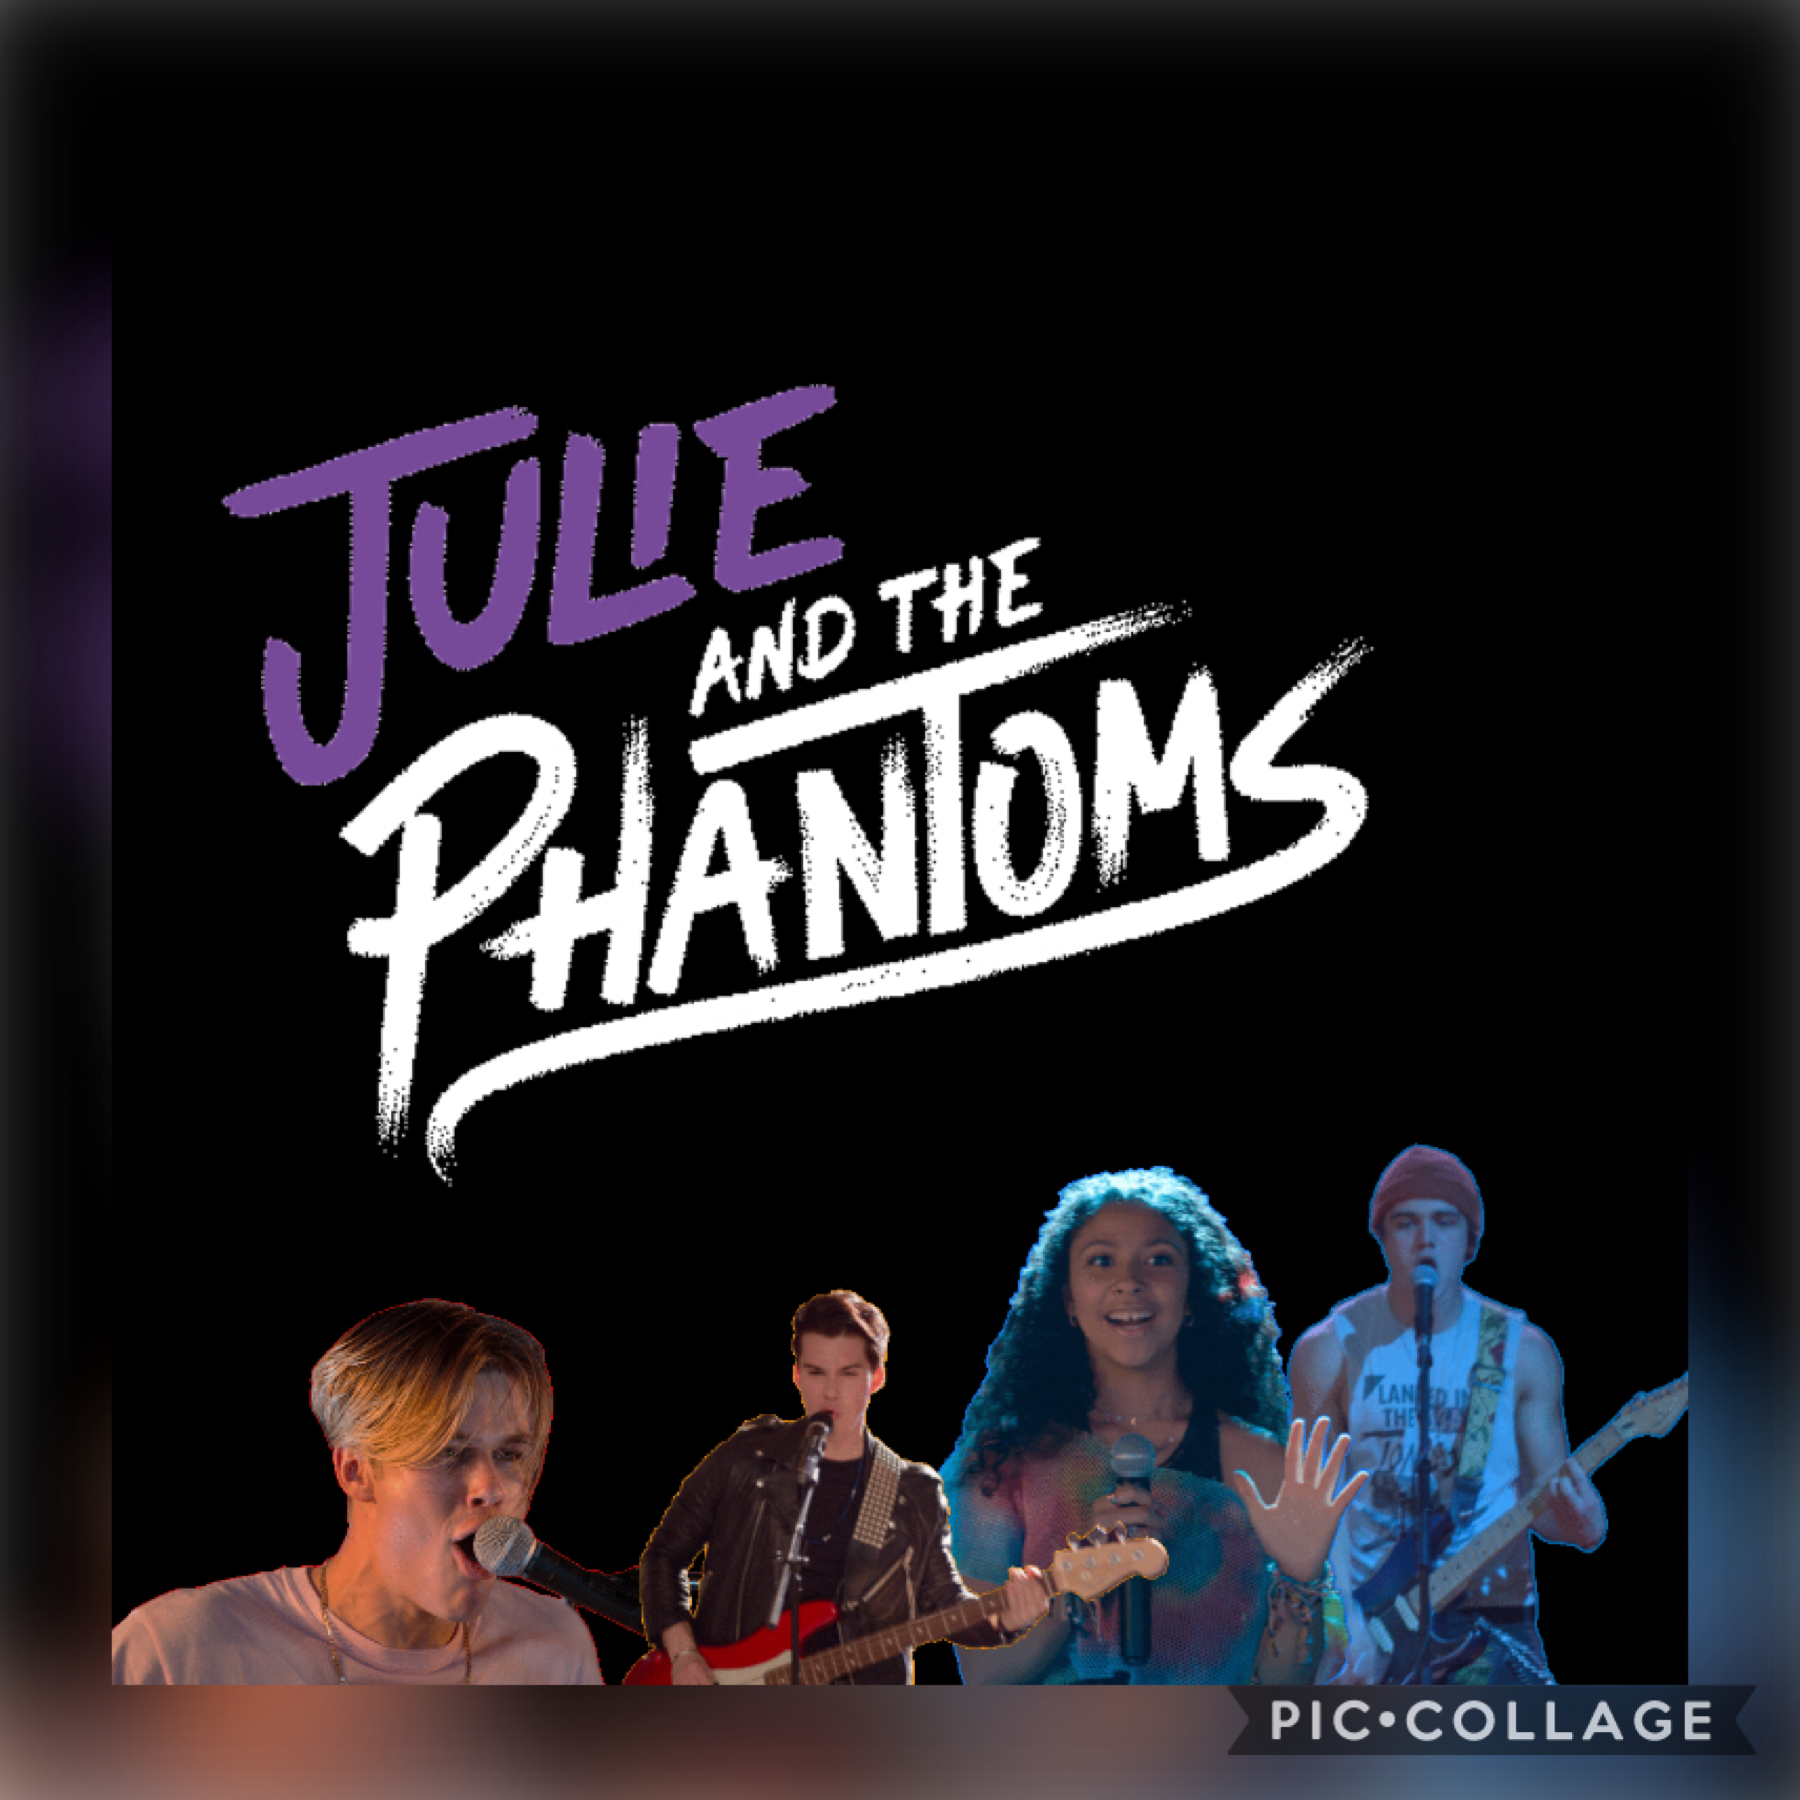 Sorry I've been inactive! But anyways Julie and the Phantoms week starts tmr!!